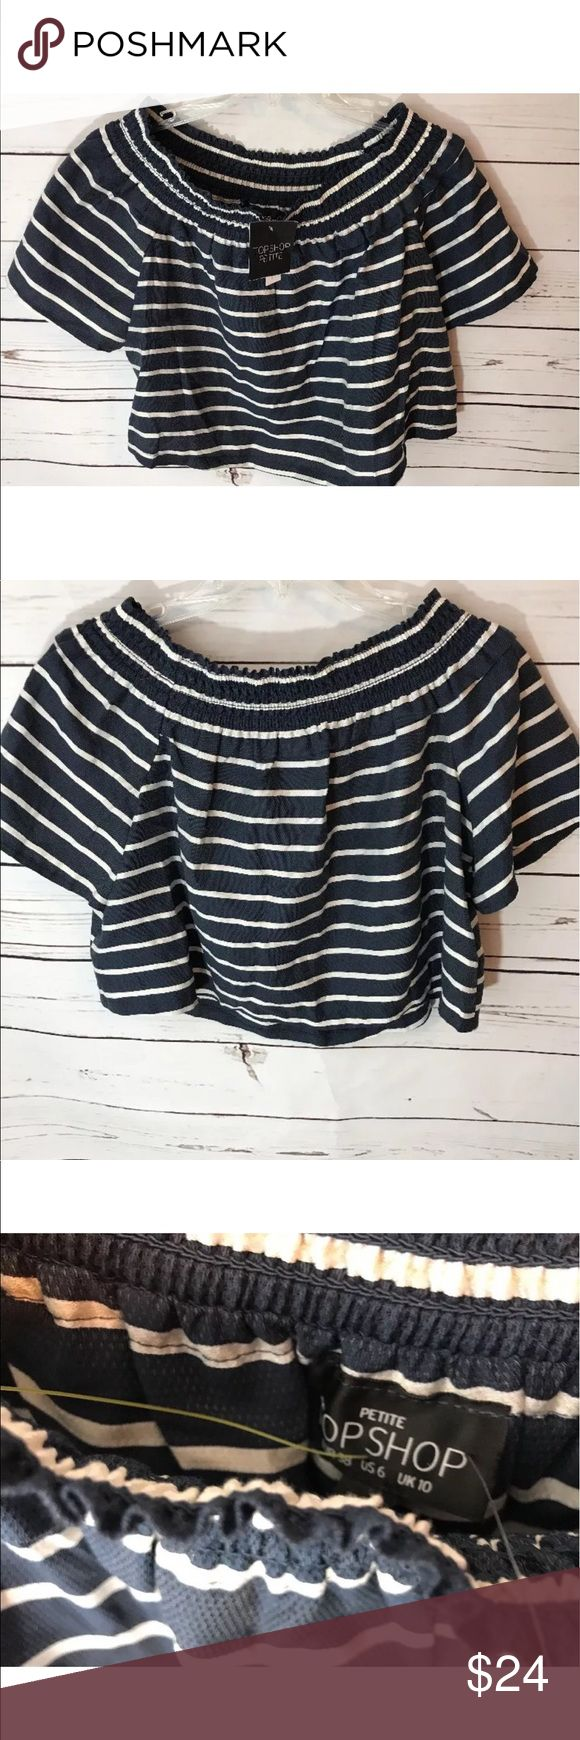 "Top Shop Petite cropped top Size 6 Navy/Cream New This item is new STYLE: Women's Cropped Top  BRAND: Top Shop  SIZE: 6  MEASUREMENTS: Chest/22""   COLOR: Navy/Cream   DESCRIPTION: This item is new with tag's Top Shop Tops Crop Tops"